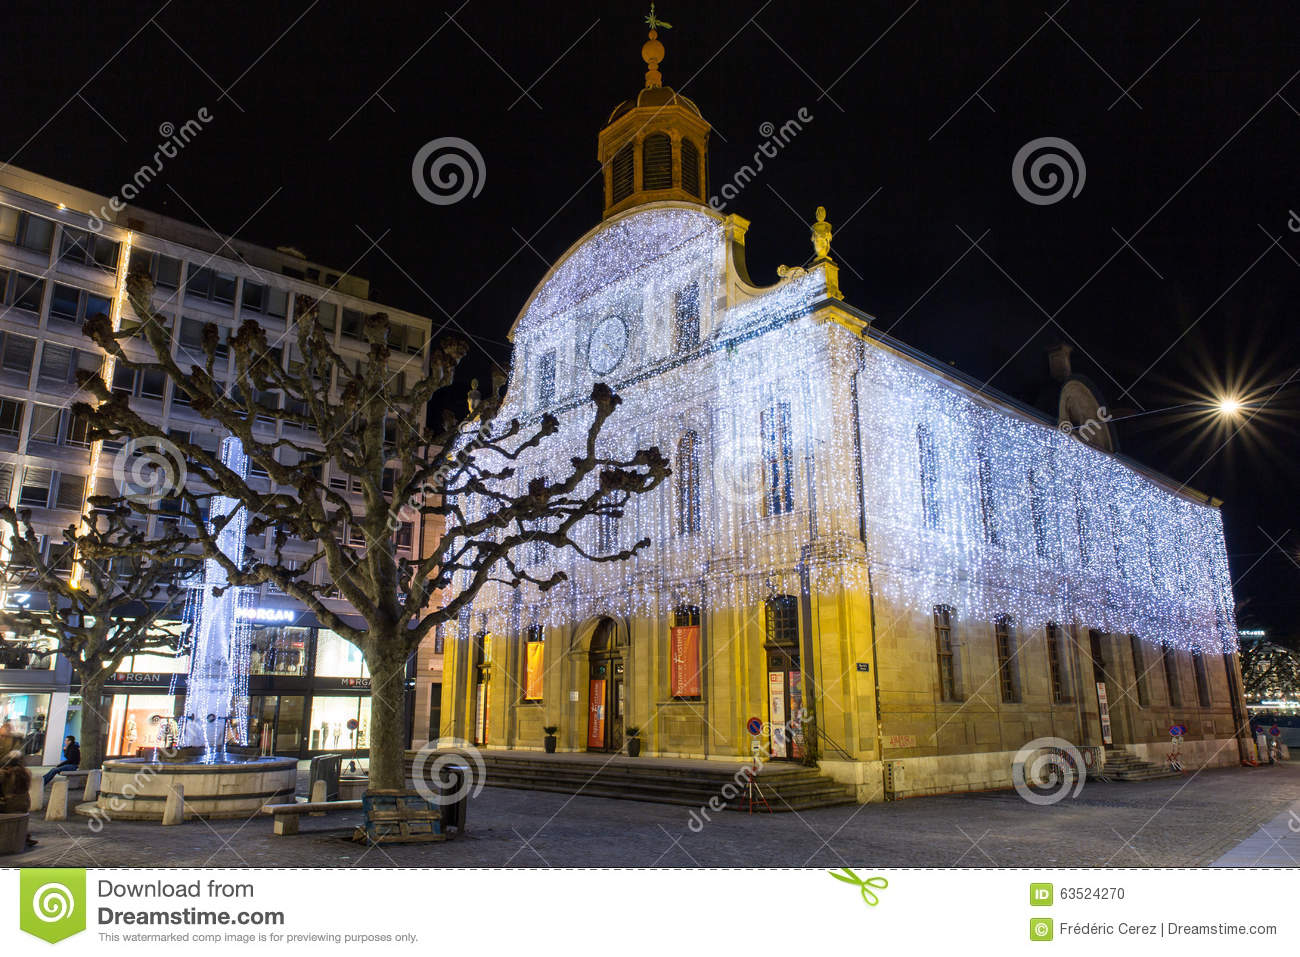 #A68125 Fusterie Temple During Christmas Season Editorial Image  5545 decorations noel geneve 1300x957 px @ aertt.com